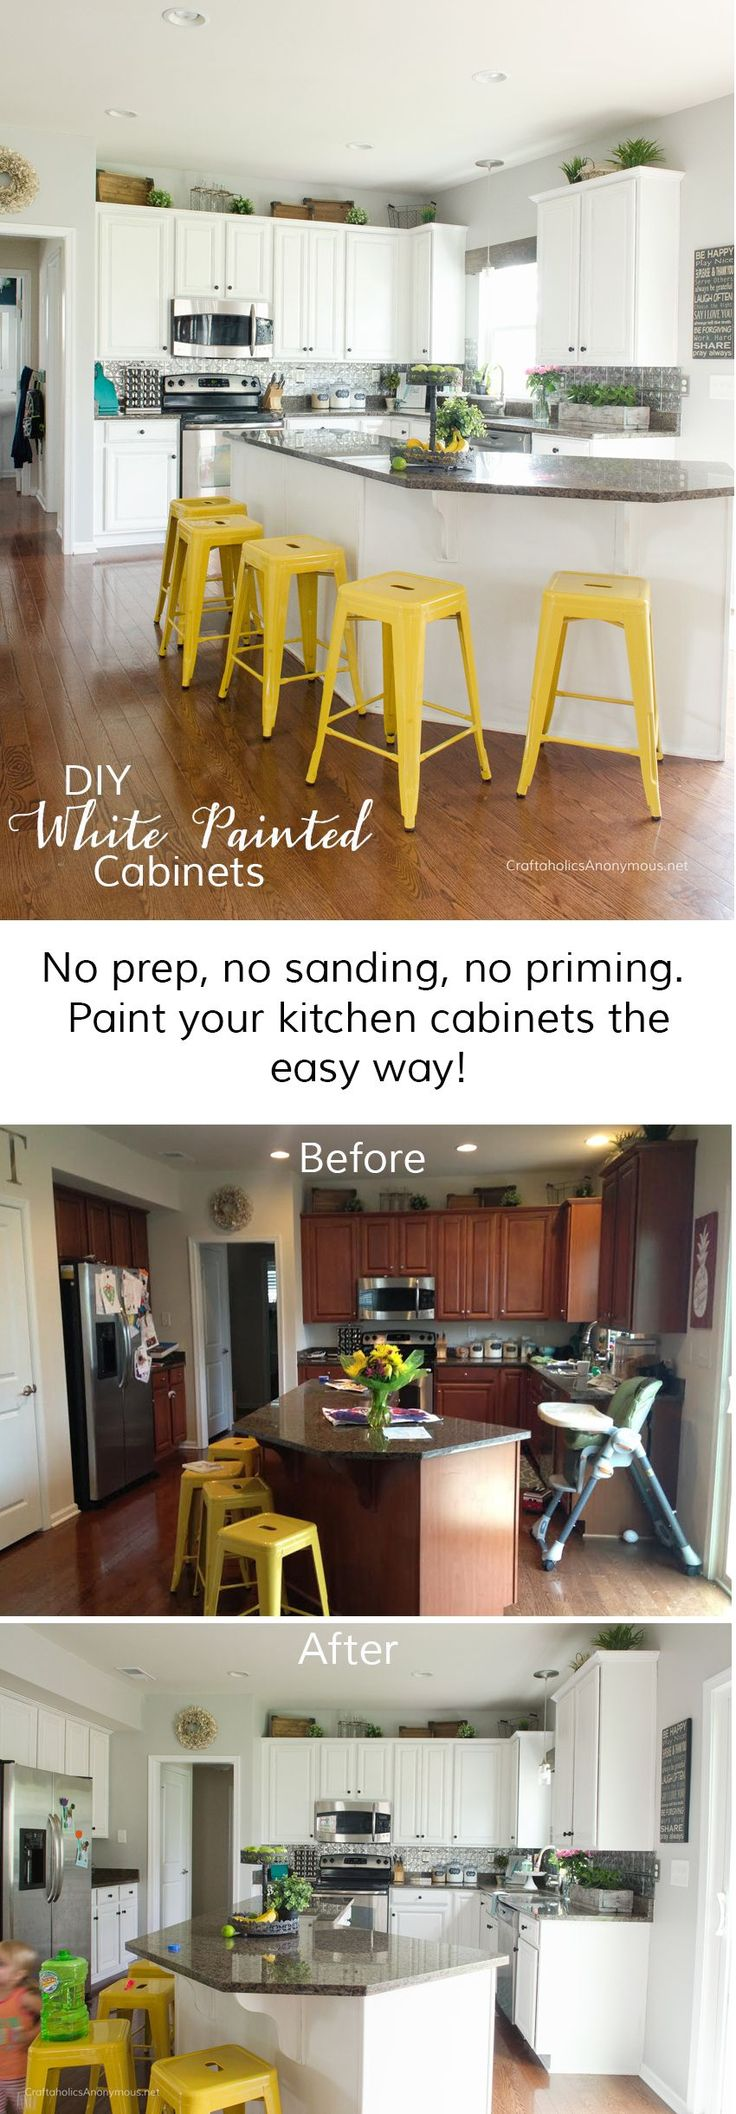 How to Paint Cabinets the easy way! No prep, no priming, no stripping. DIY white kitchen cabinets with chalk paint.